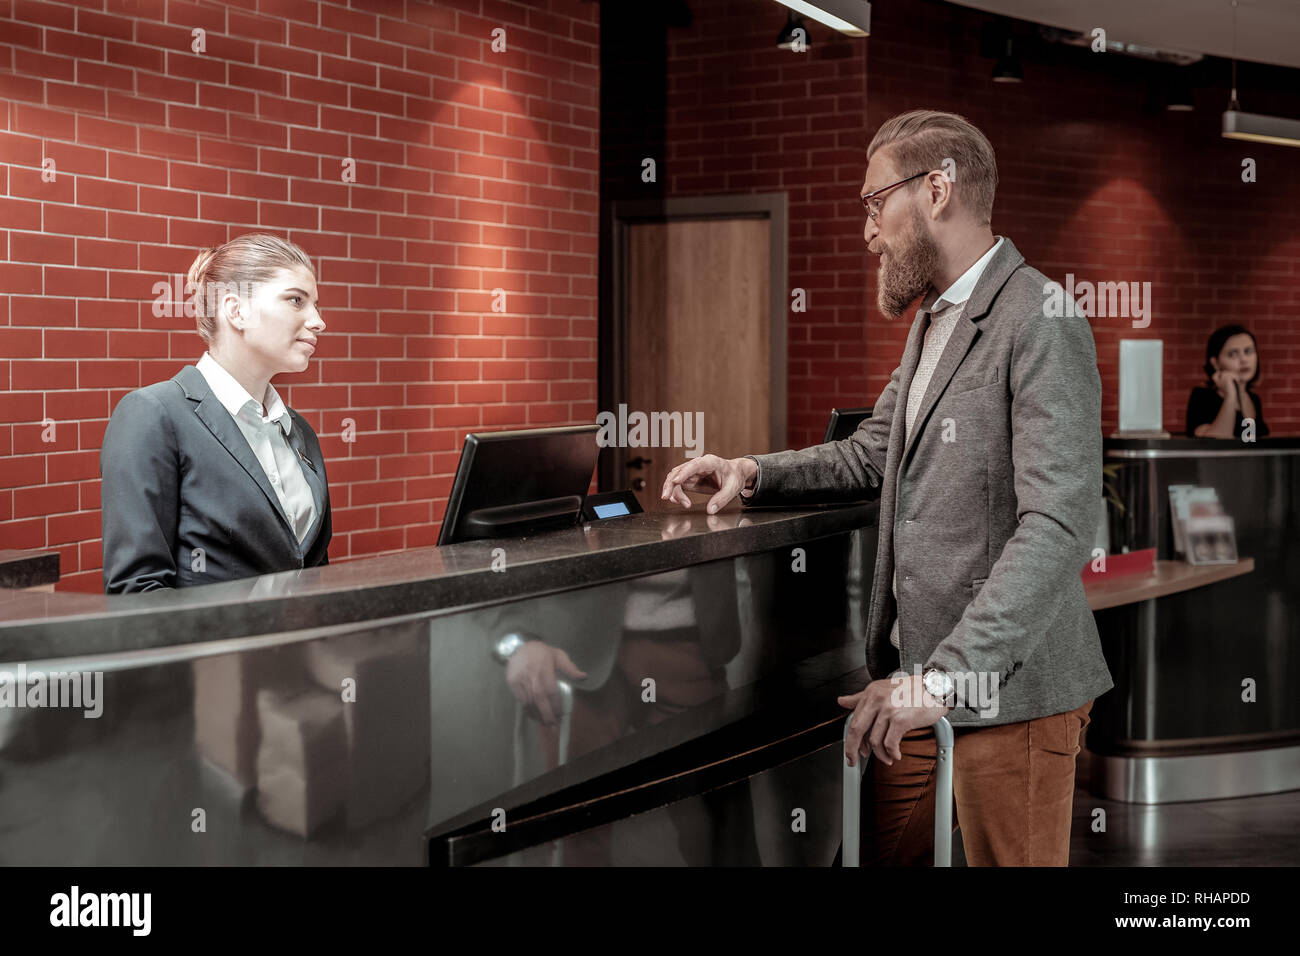 Pleased young manager talking to her visitor - Stock Image